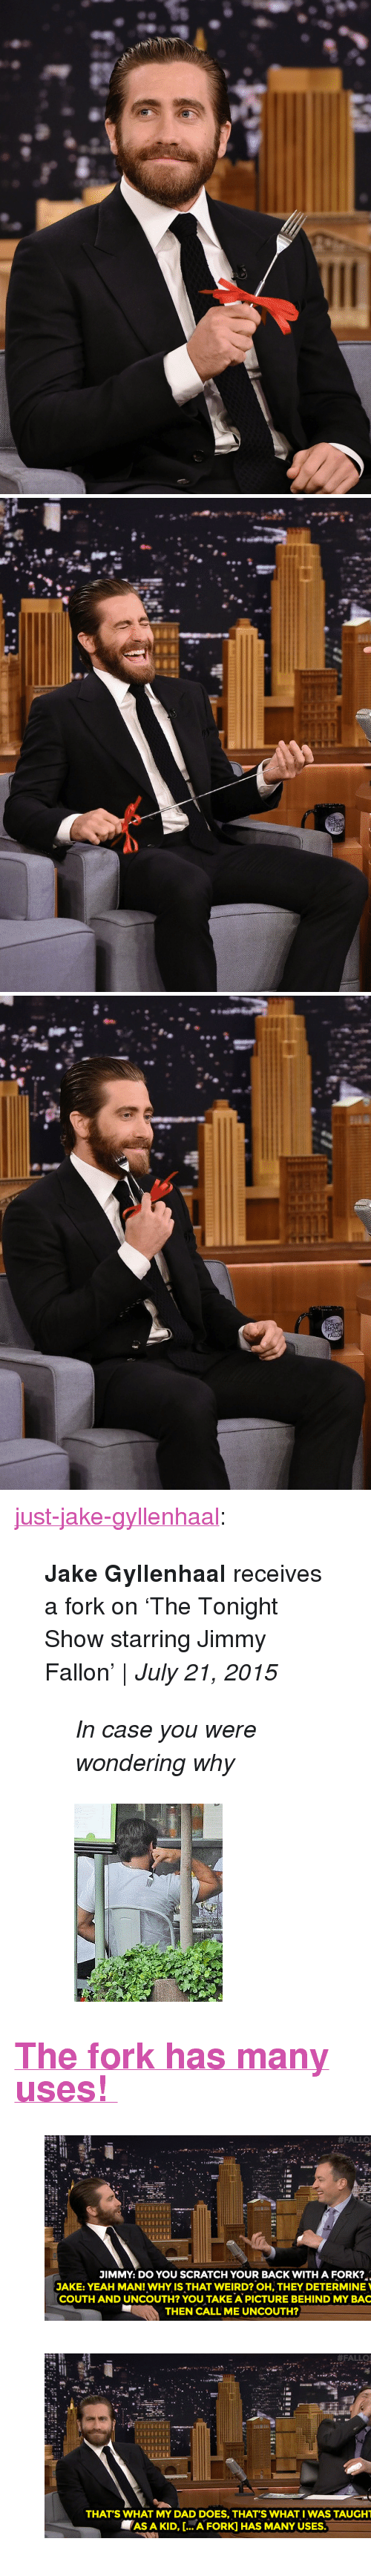 "tonight show starring jimmy fallon: <p><a class=""tumblr_blog"" href=""http://just-jake-gyllenhaal.tumblr.com/post/124701668770"" target=""_blank"">just-jake-gyllenhaal</a>:</p> <blockquote> <p></p> <p><b>Jake Gyllenhaal </b>receives a fork on 'The Tonight Show starring Jimmy Fallon' 